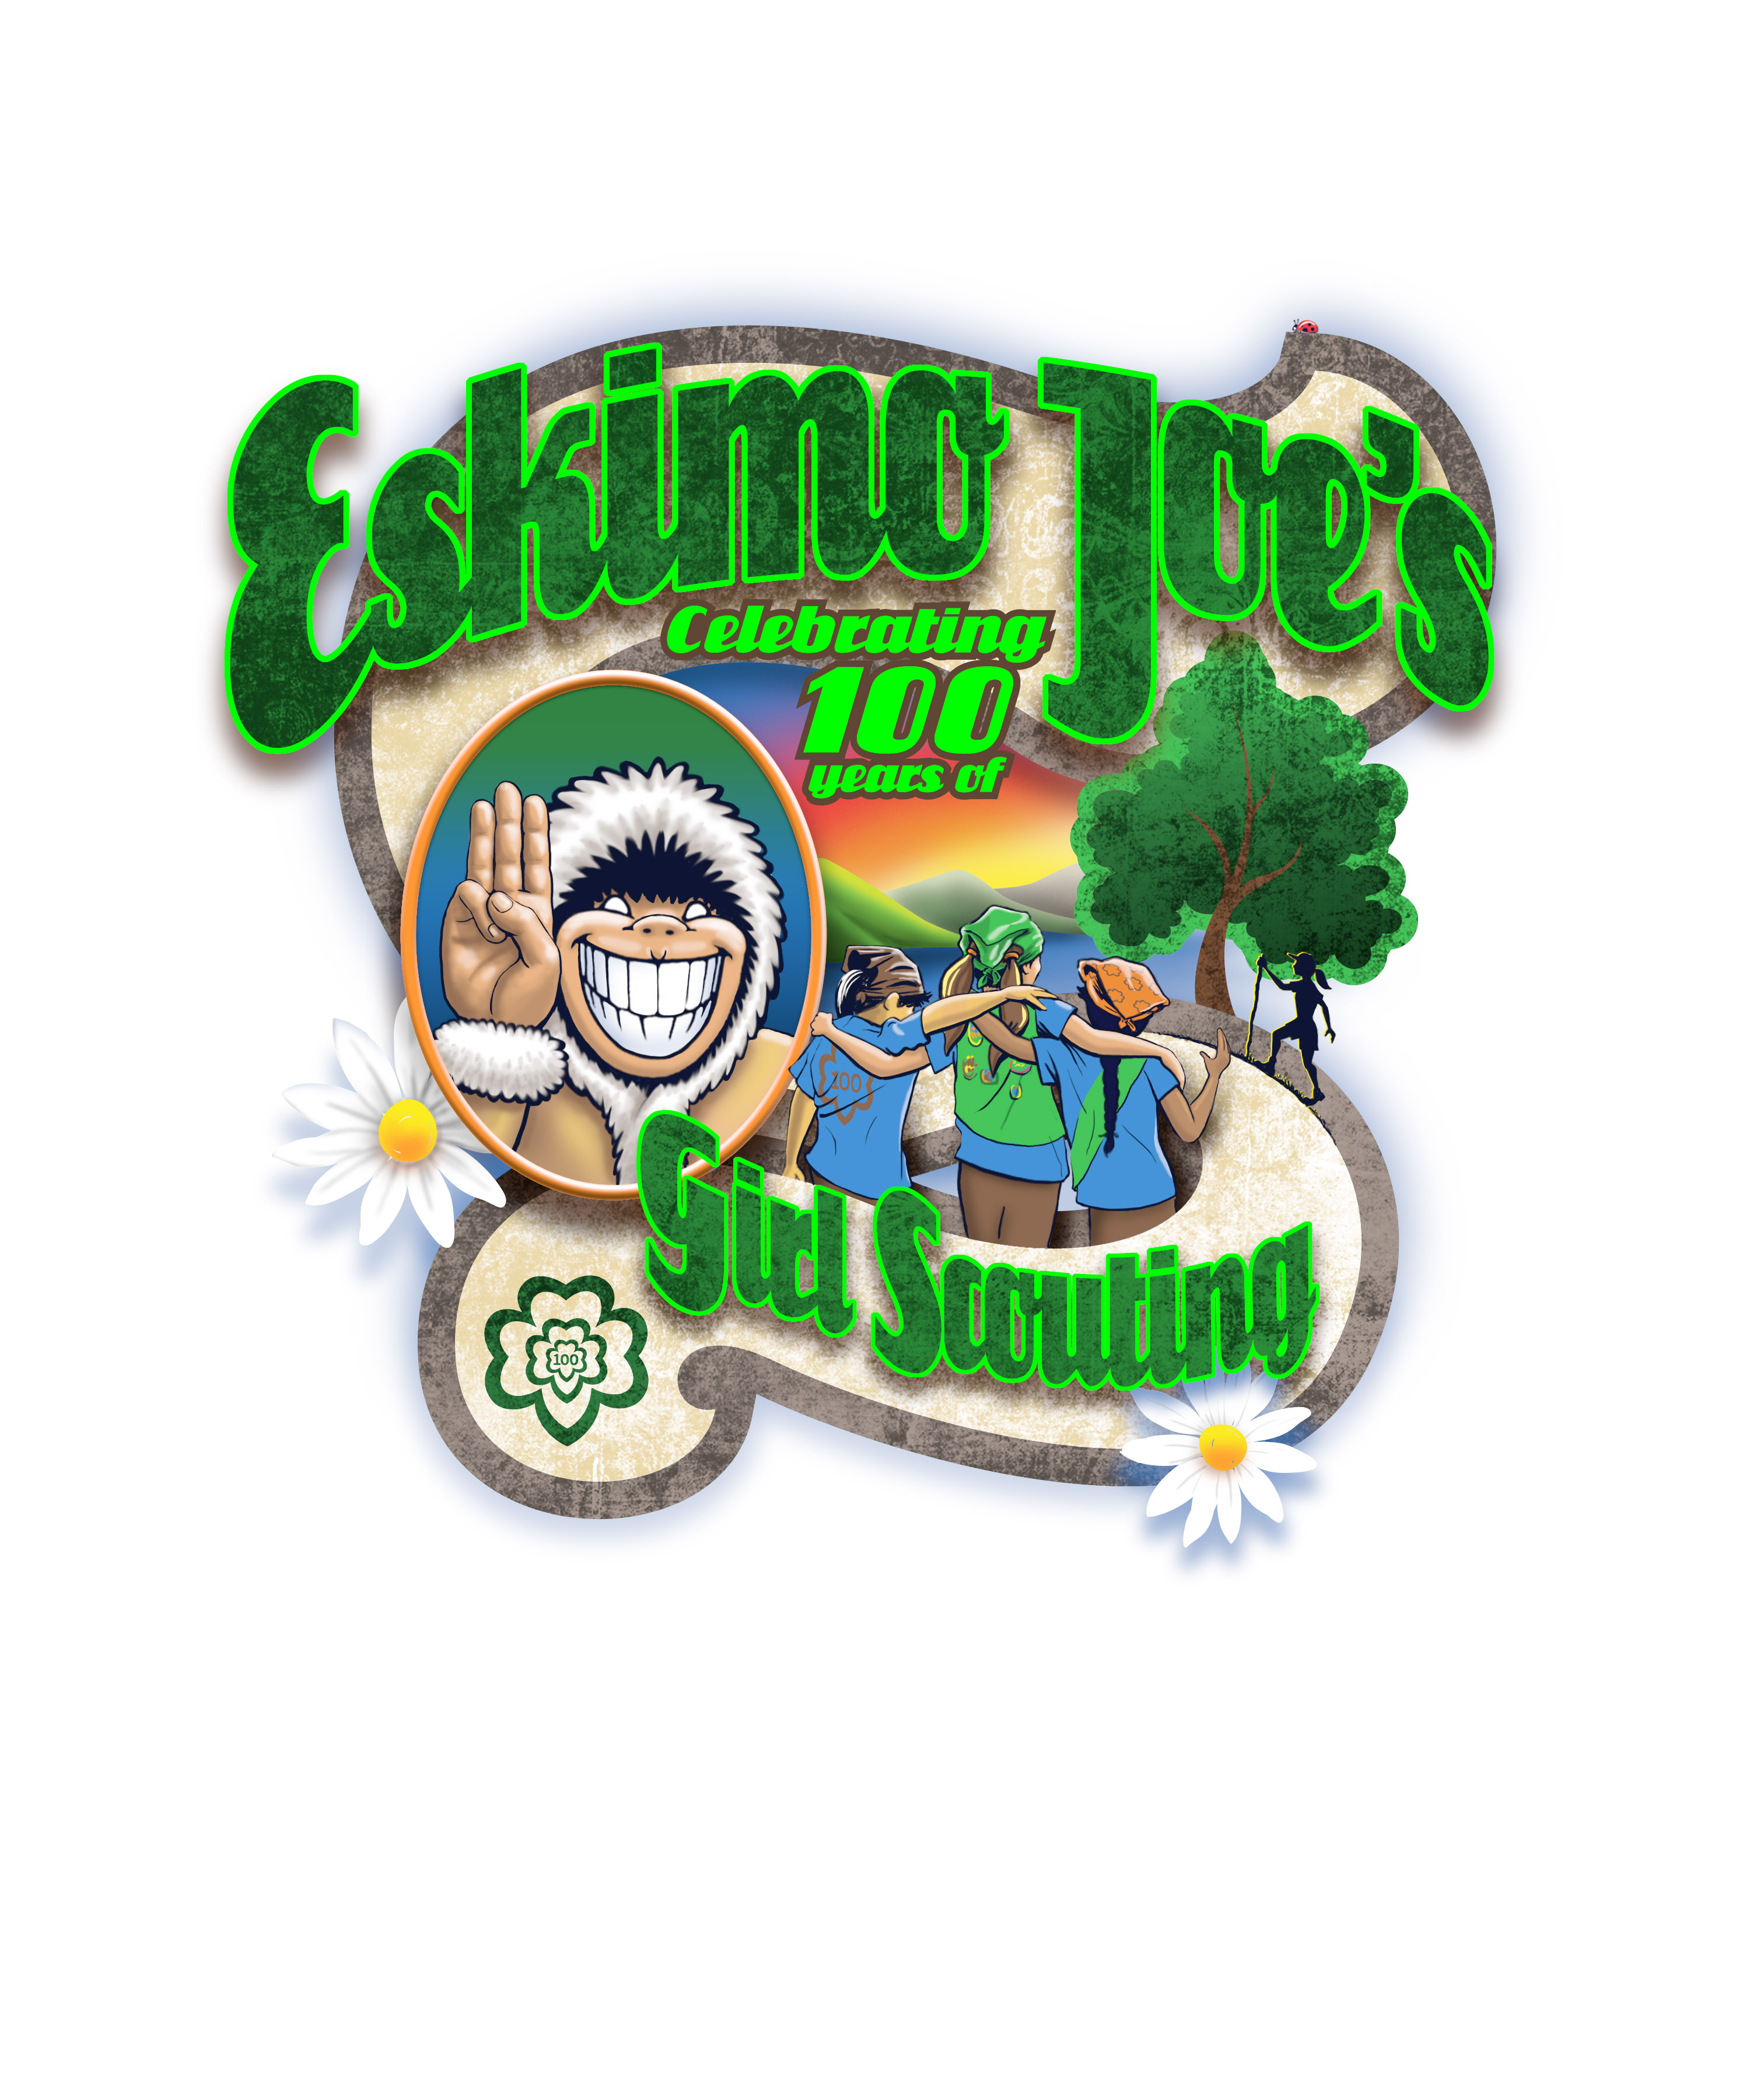 Front detail of Girl Scouts 100th anniversary t-shirt by Eskimo Joe's